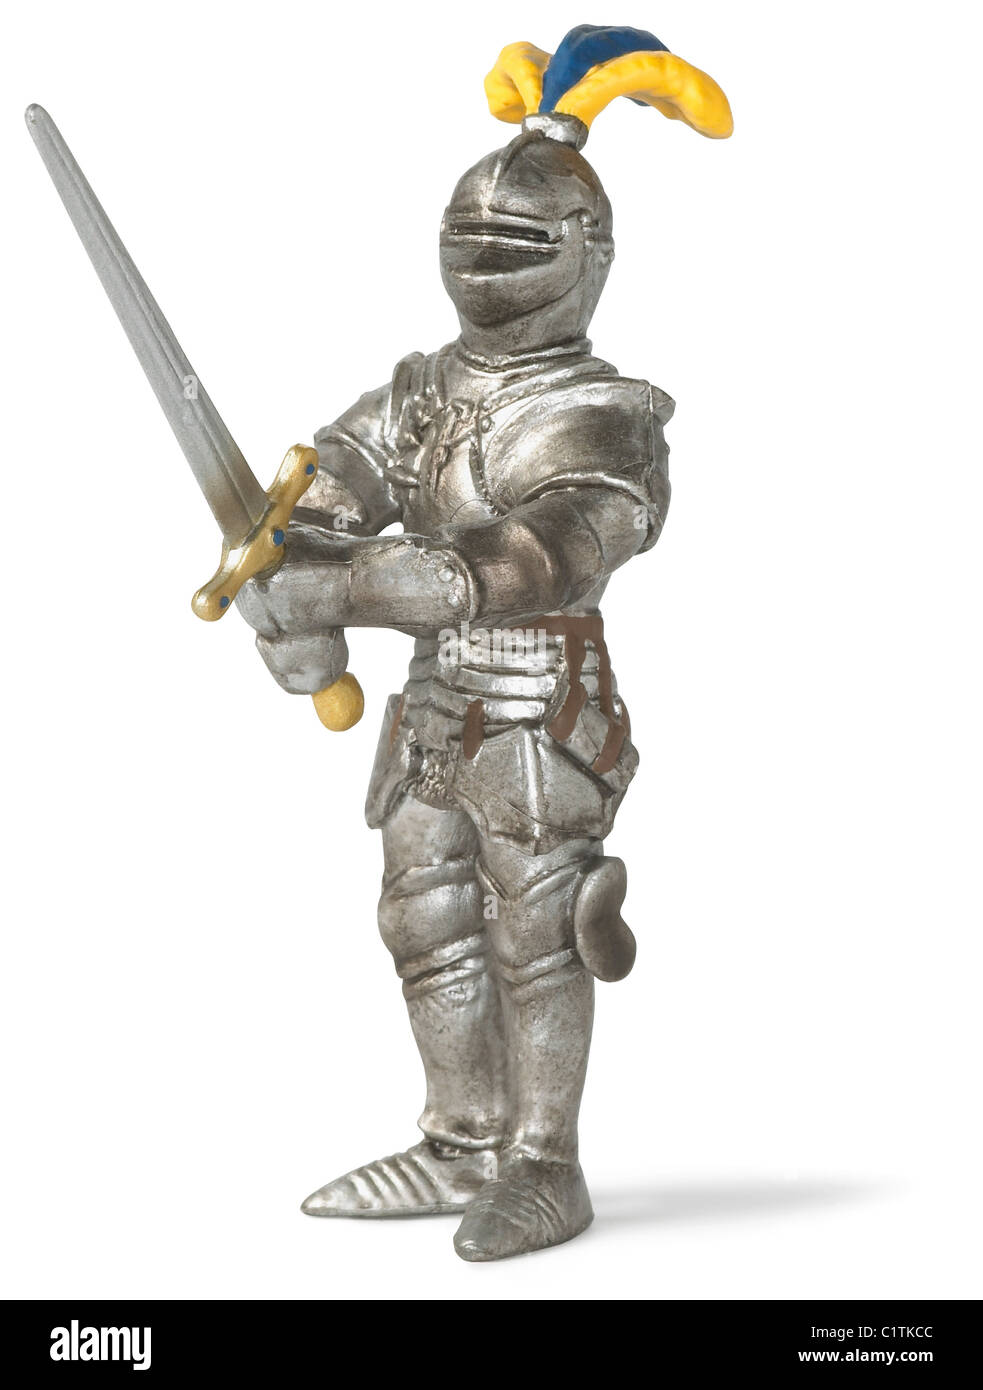 medieval knight in shining armor isolated on white with clipping path - Stock Image